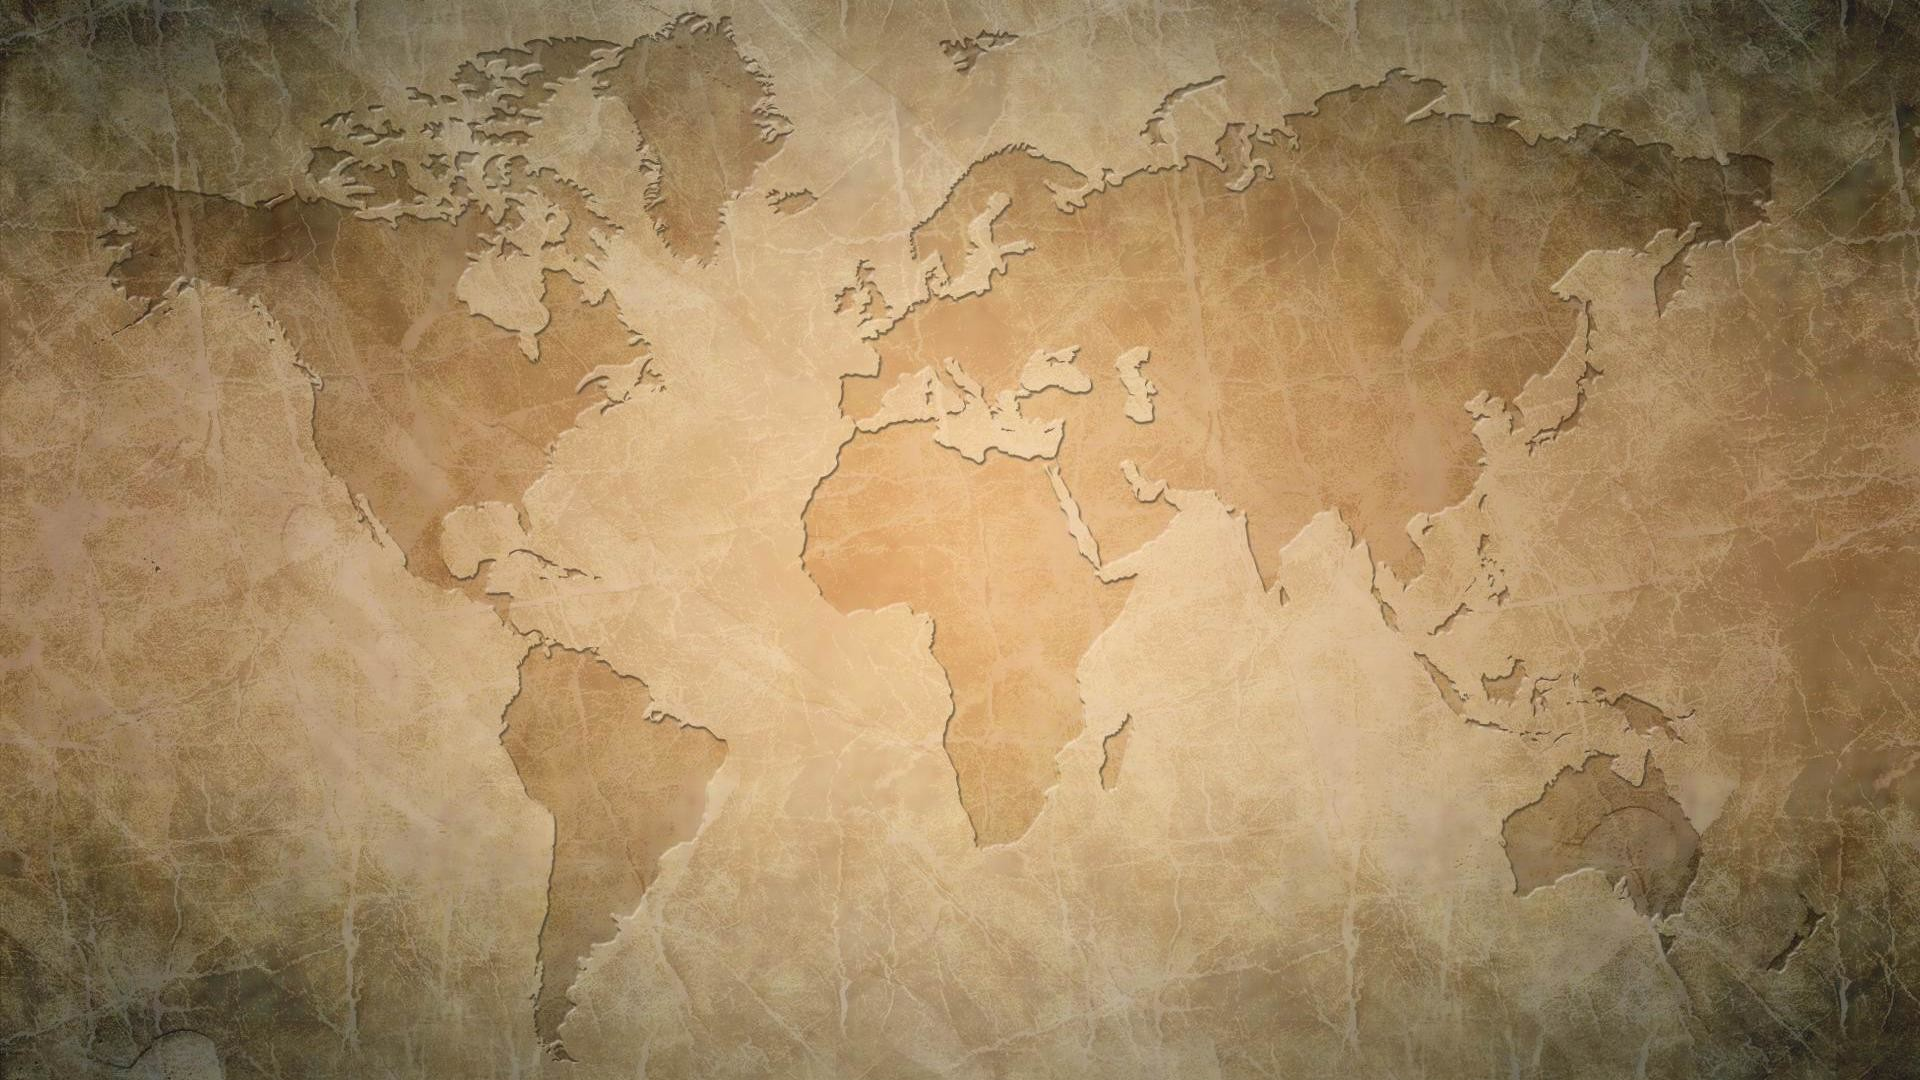 Vintage map wallpaper 1920x1080 vintage world map wallpaper 3656 download gumiabroncs Image collections